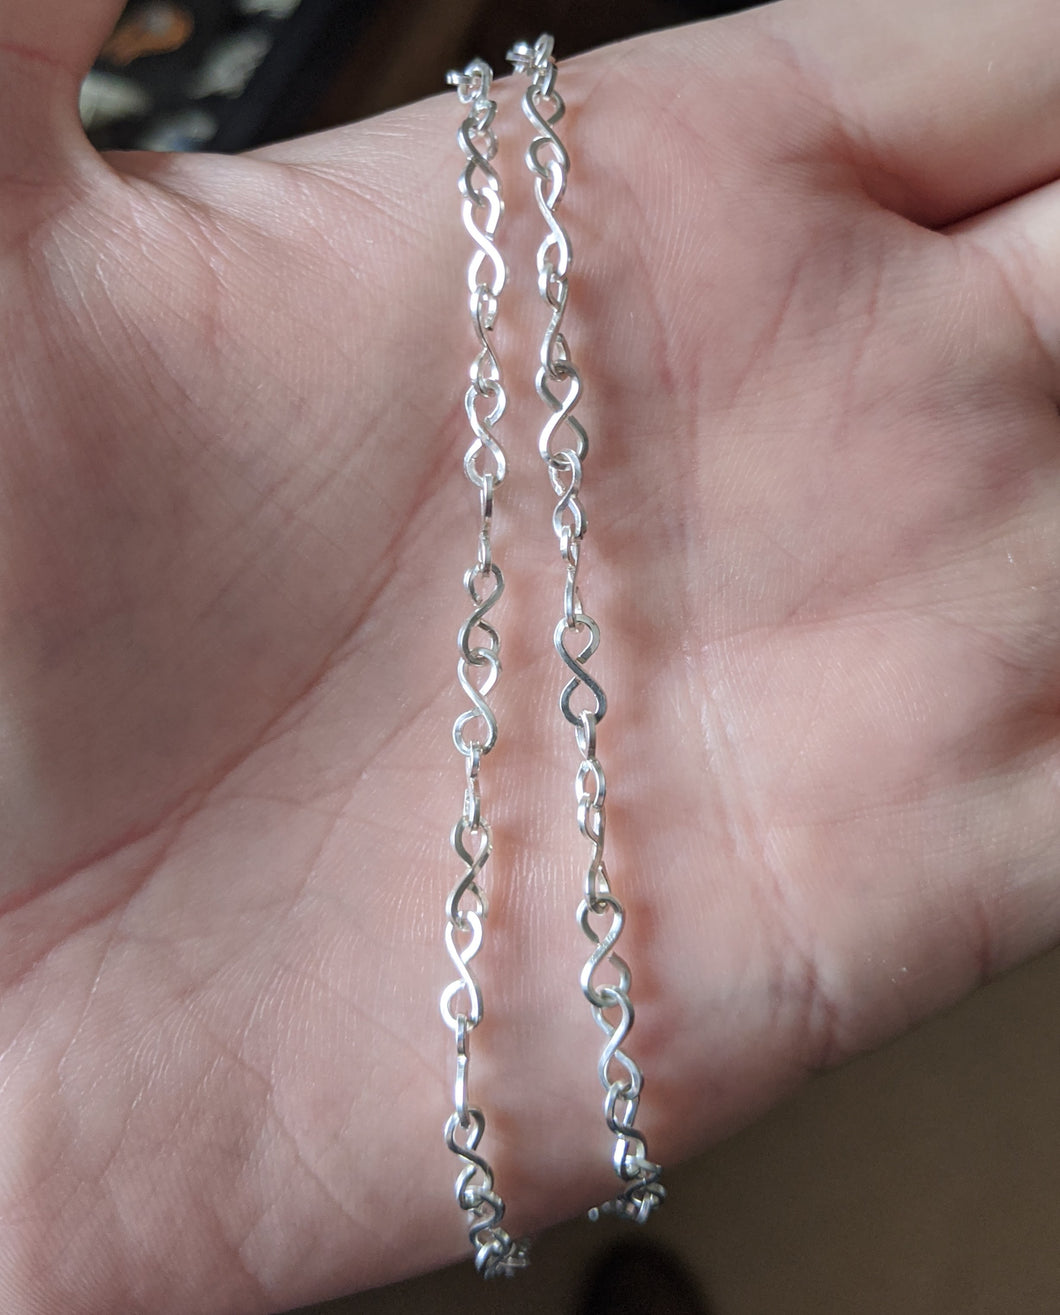 Sterling silver Chain 21 gauge square wire 26 inches long necklace robert allen jewelry